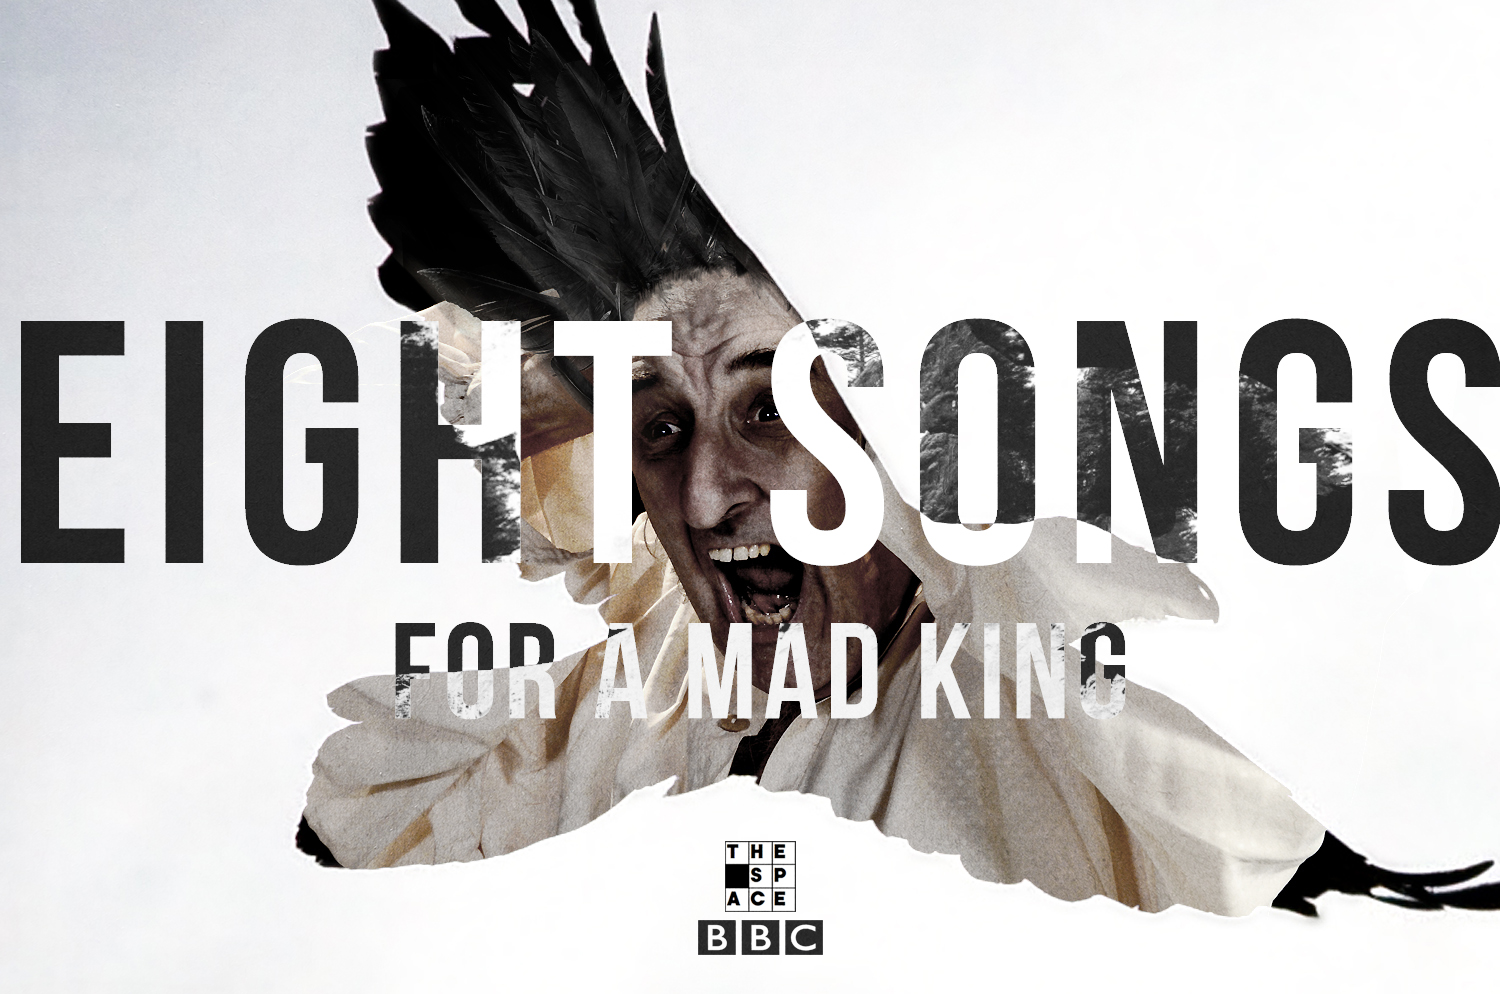 MAD KING2